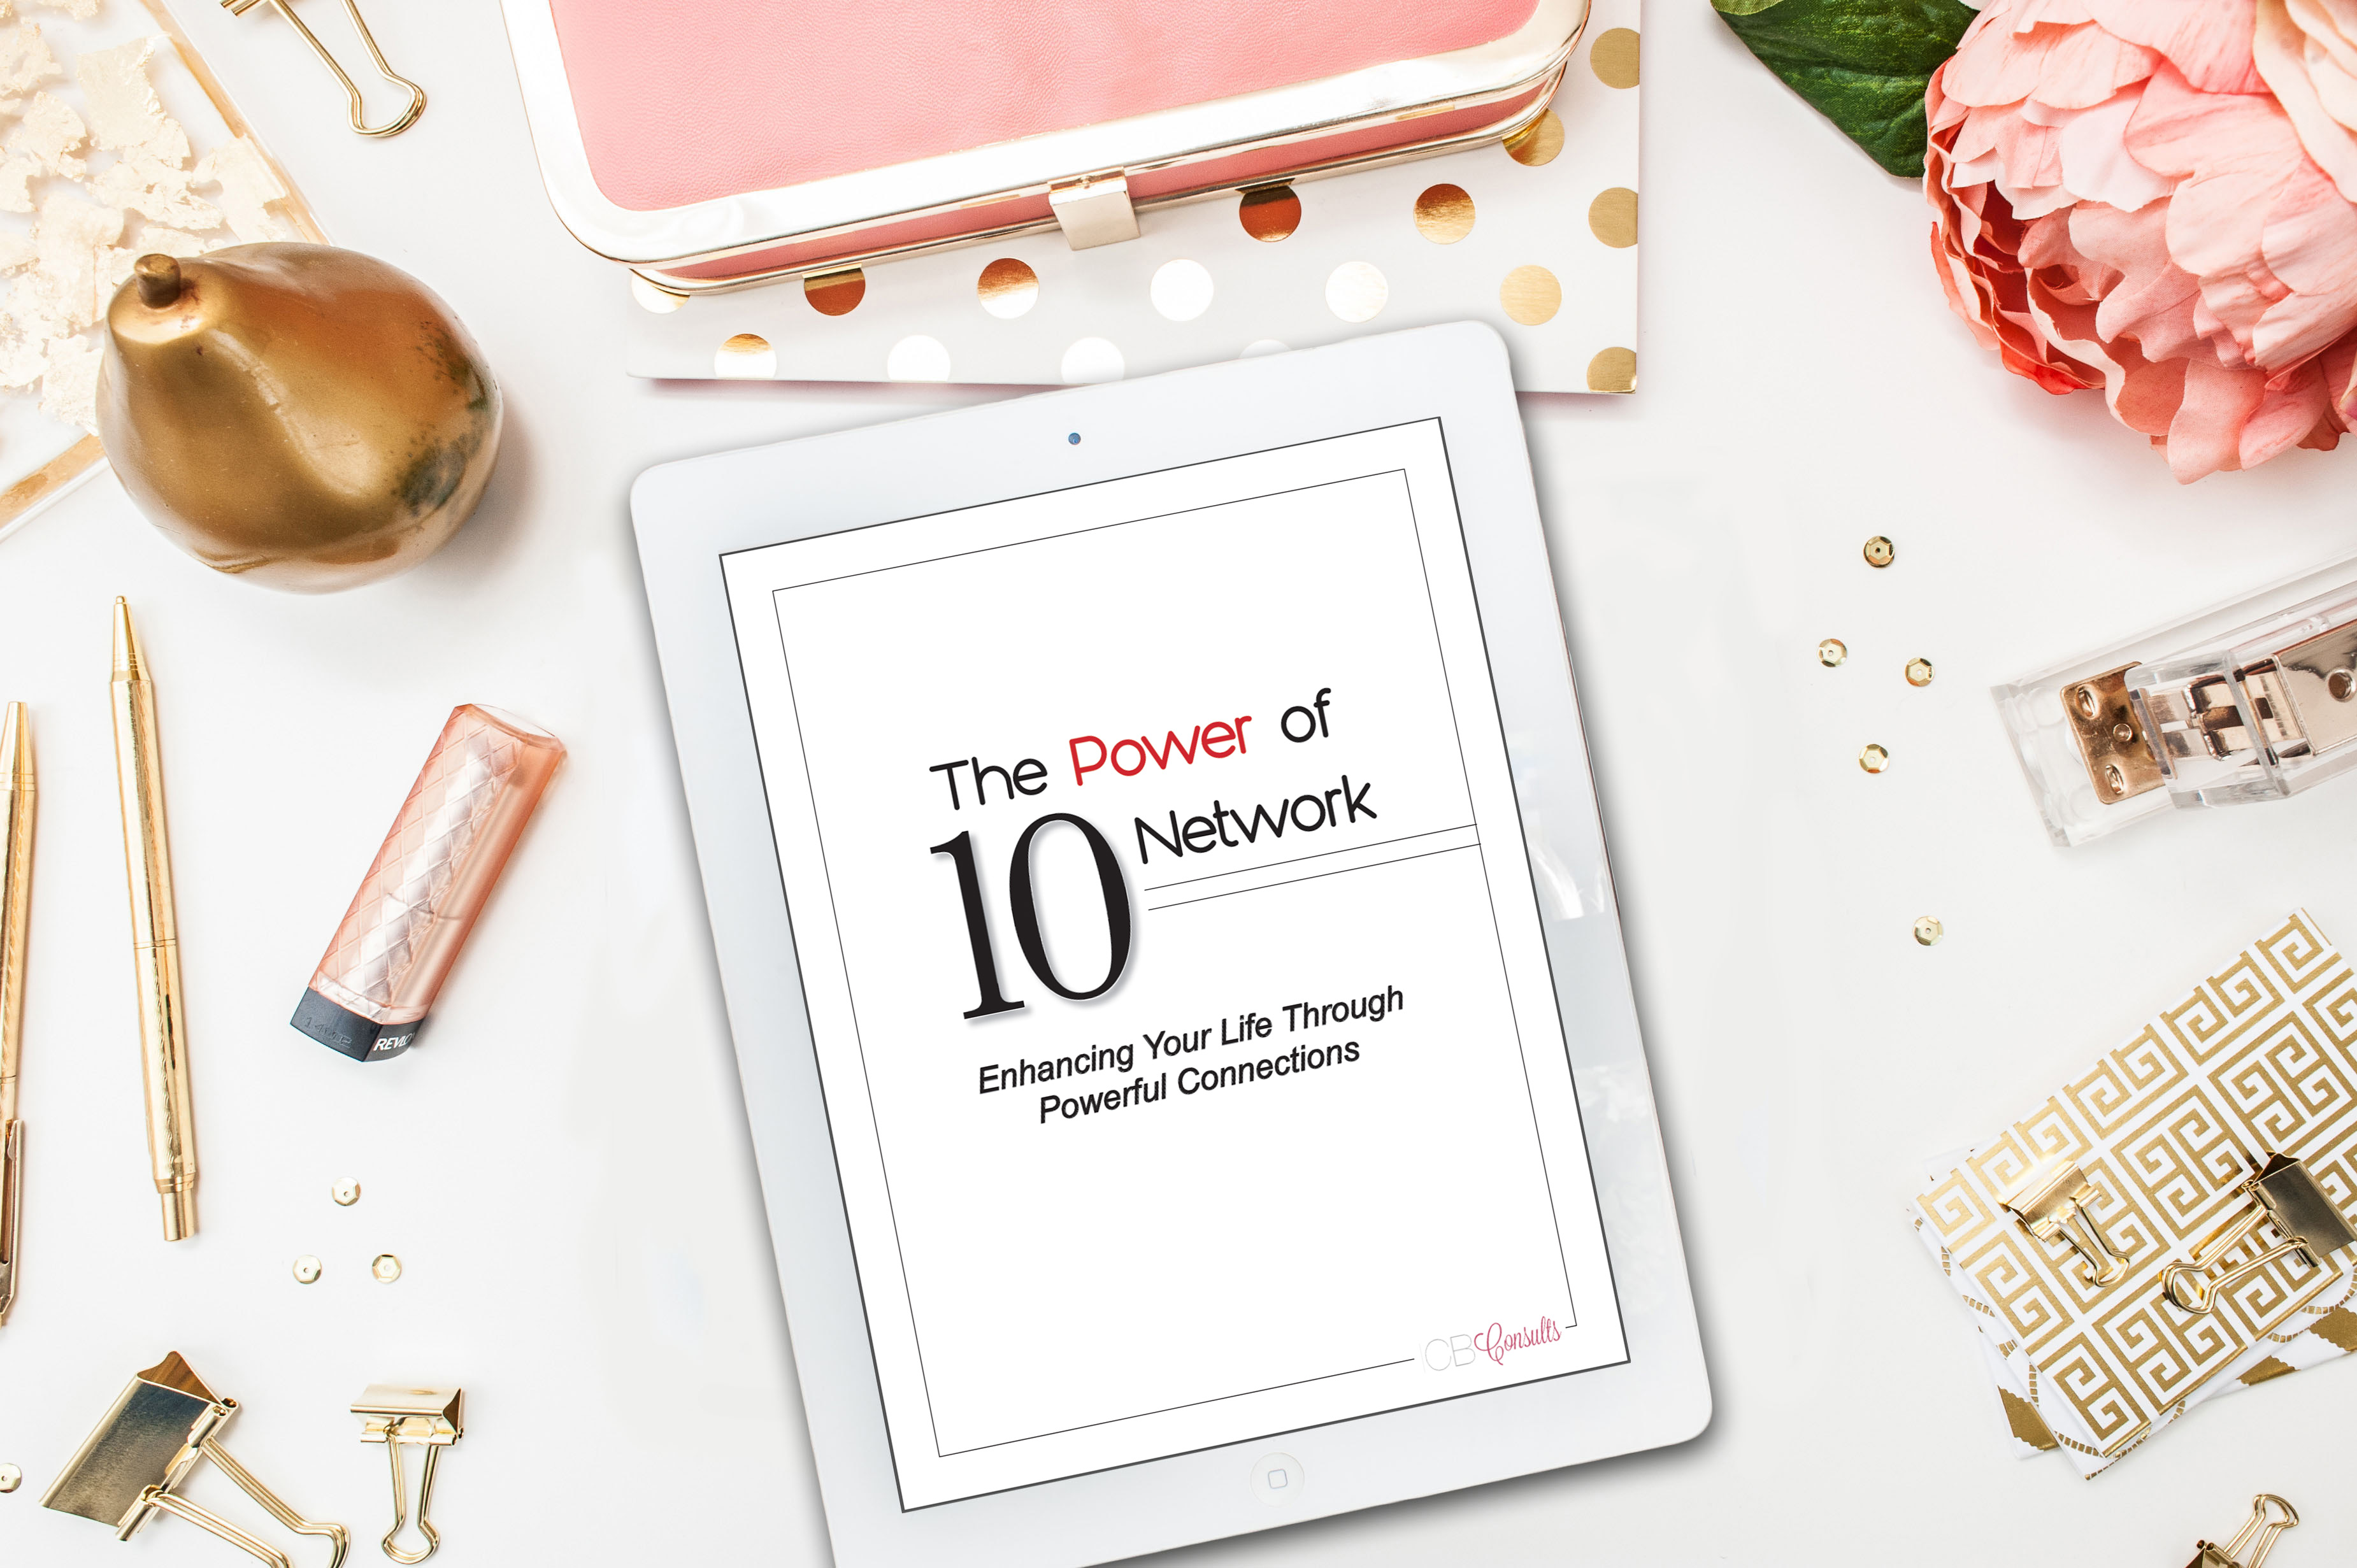 The Power of 10 Network